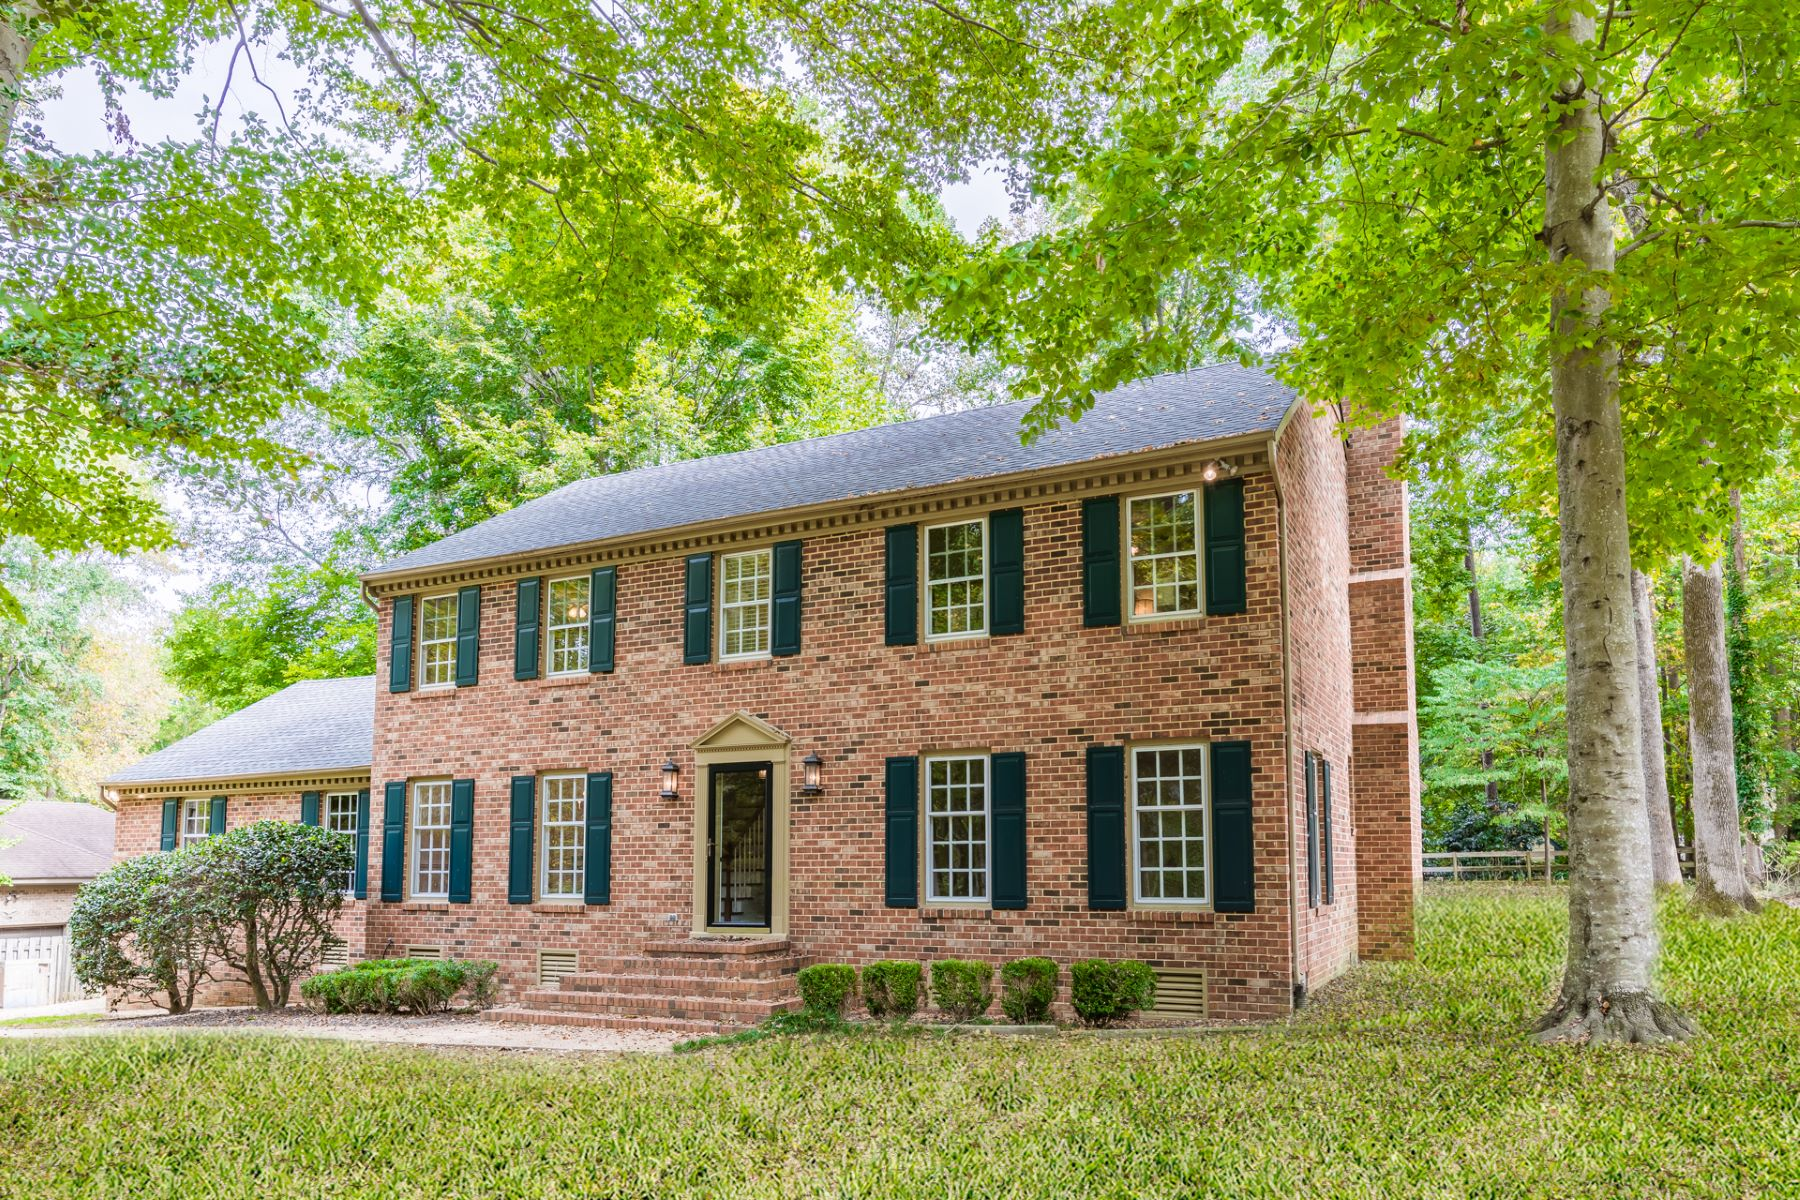 Single Family Homes for Active at Kingsmill 6 Staples Road Williamsburg, Virginia 23185 United States